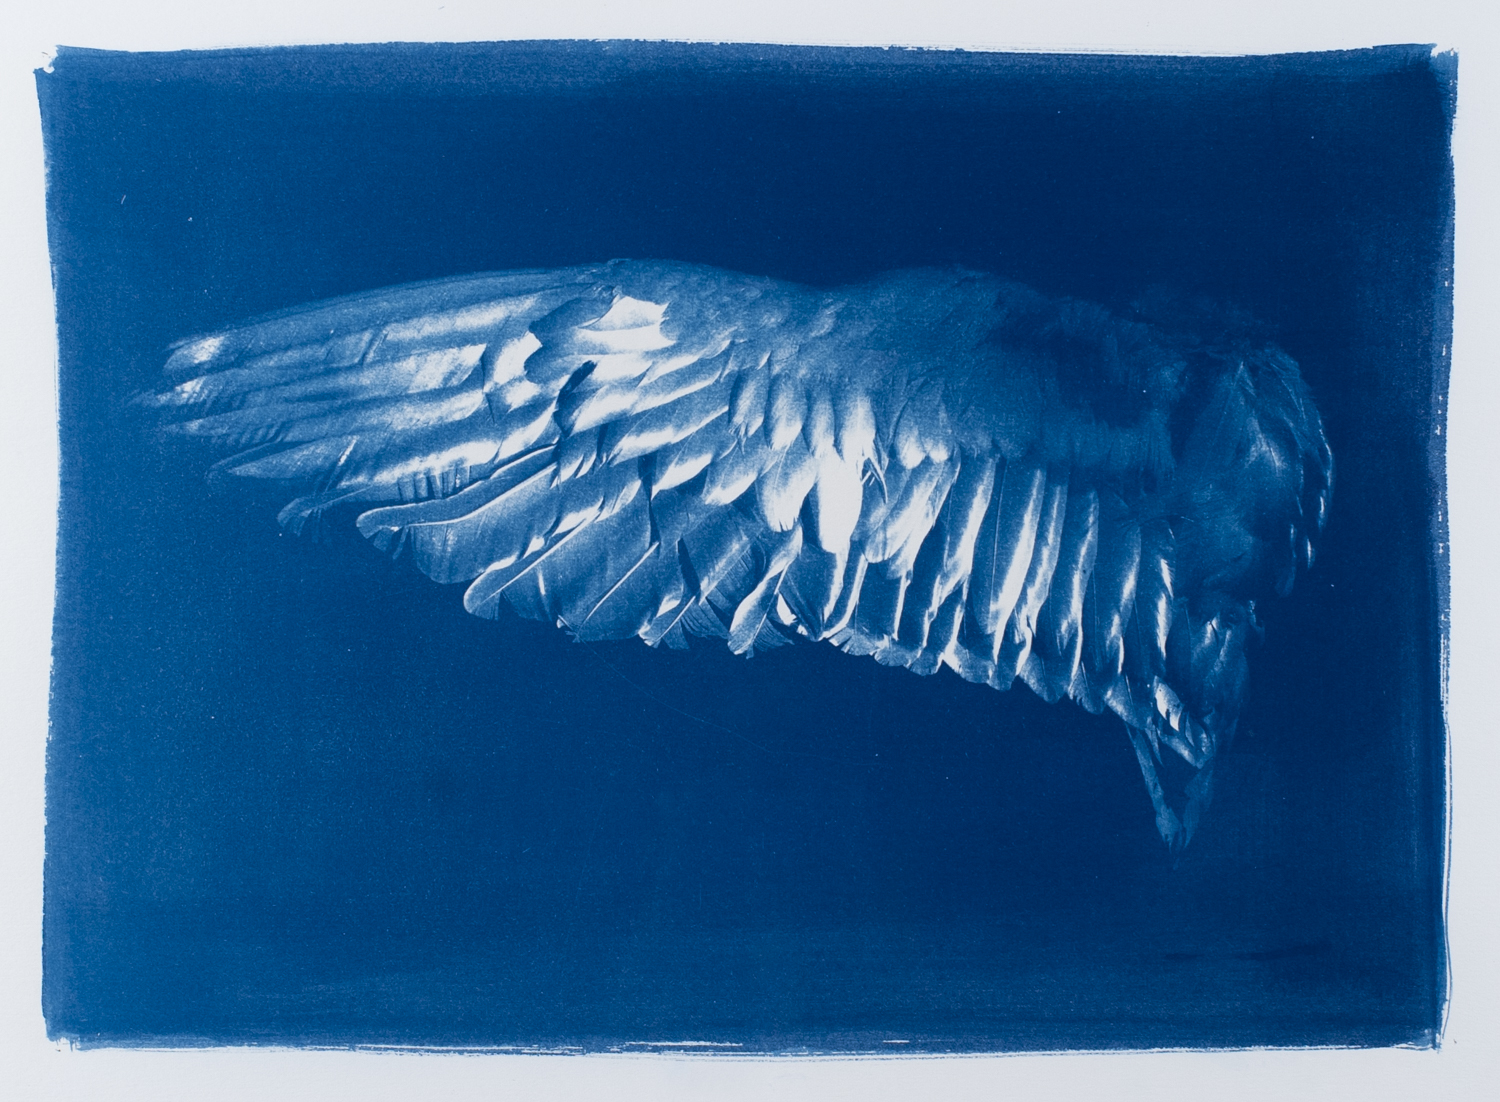 Cyanotype print of an outstretched wing of a bird. The species is unknown, as the museumspecimen that was photographed was not labelled.